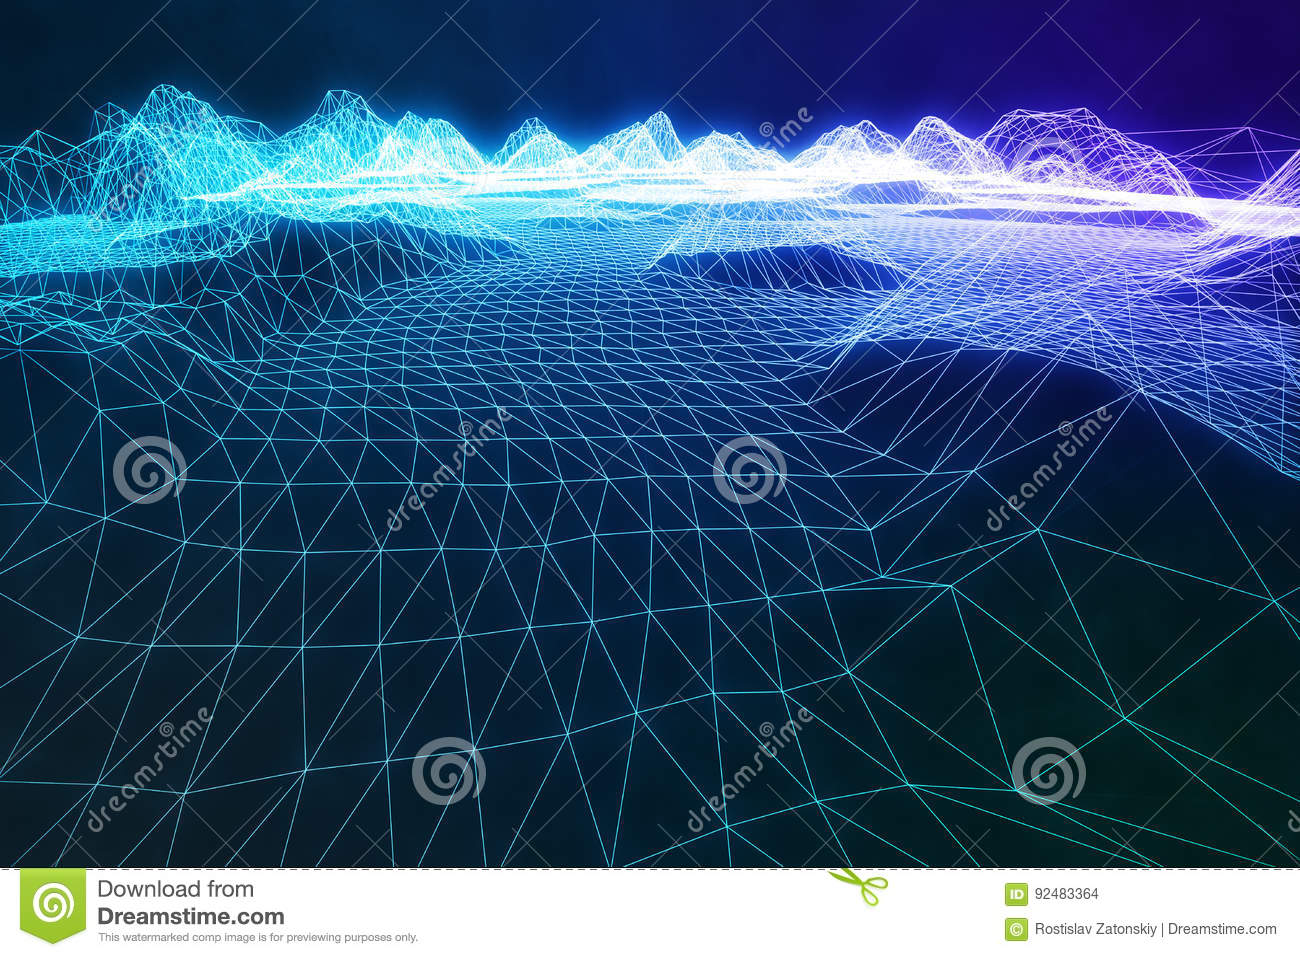 3D illustration abstract digital wireframe landscape. Cyberspace landscape grid. 3d technology. Abstract internet